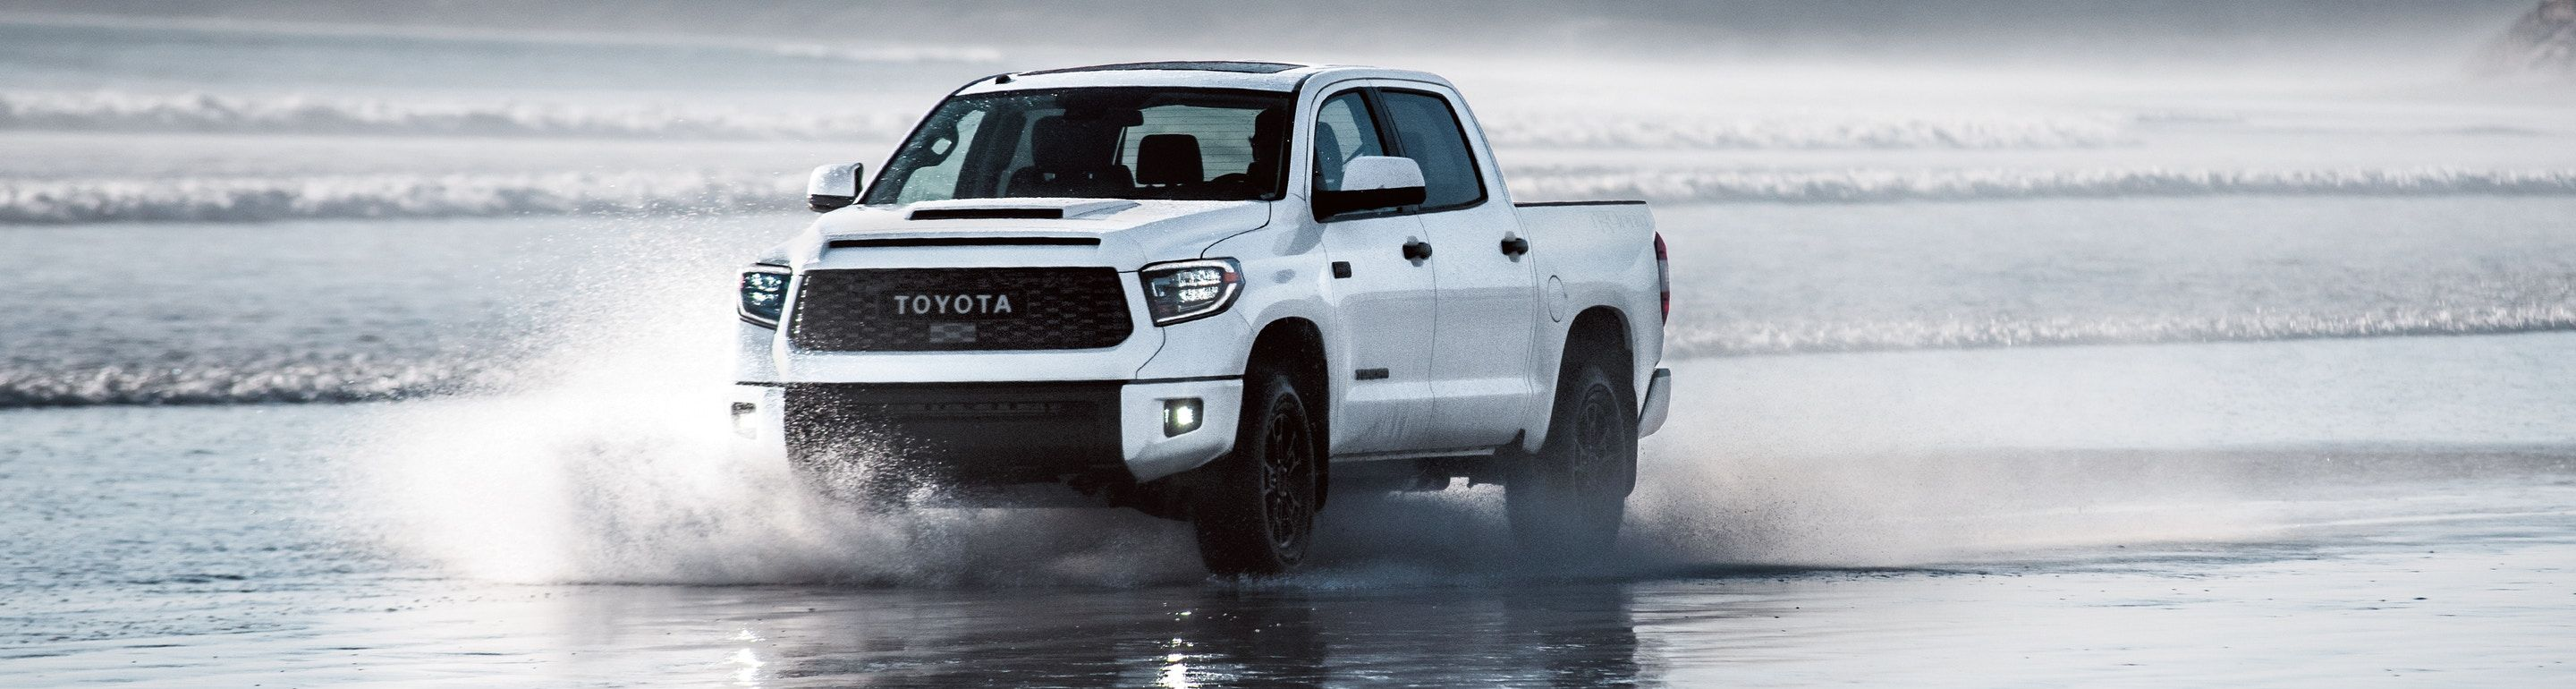 2019 Toyota Tundra for Sale near Landenberg, PA